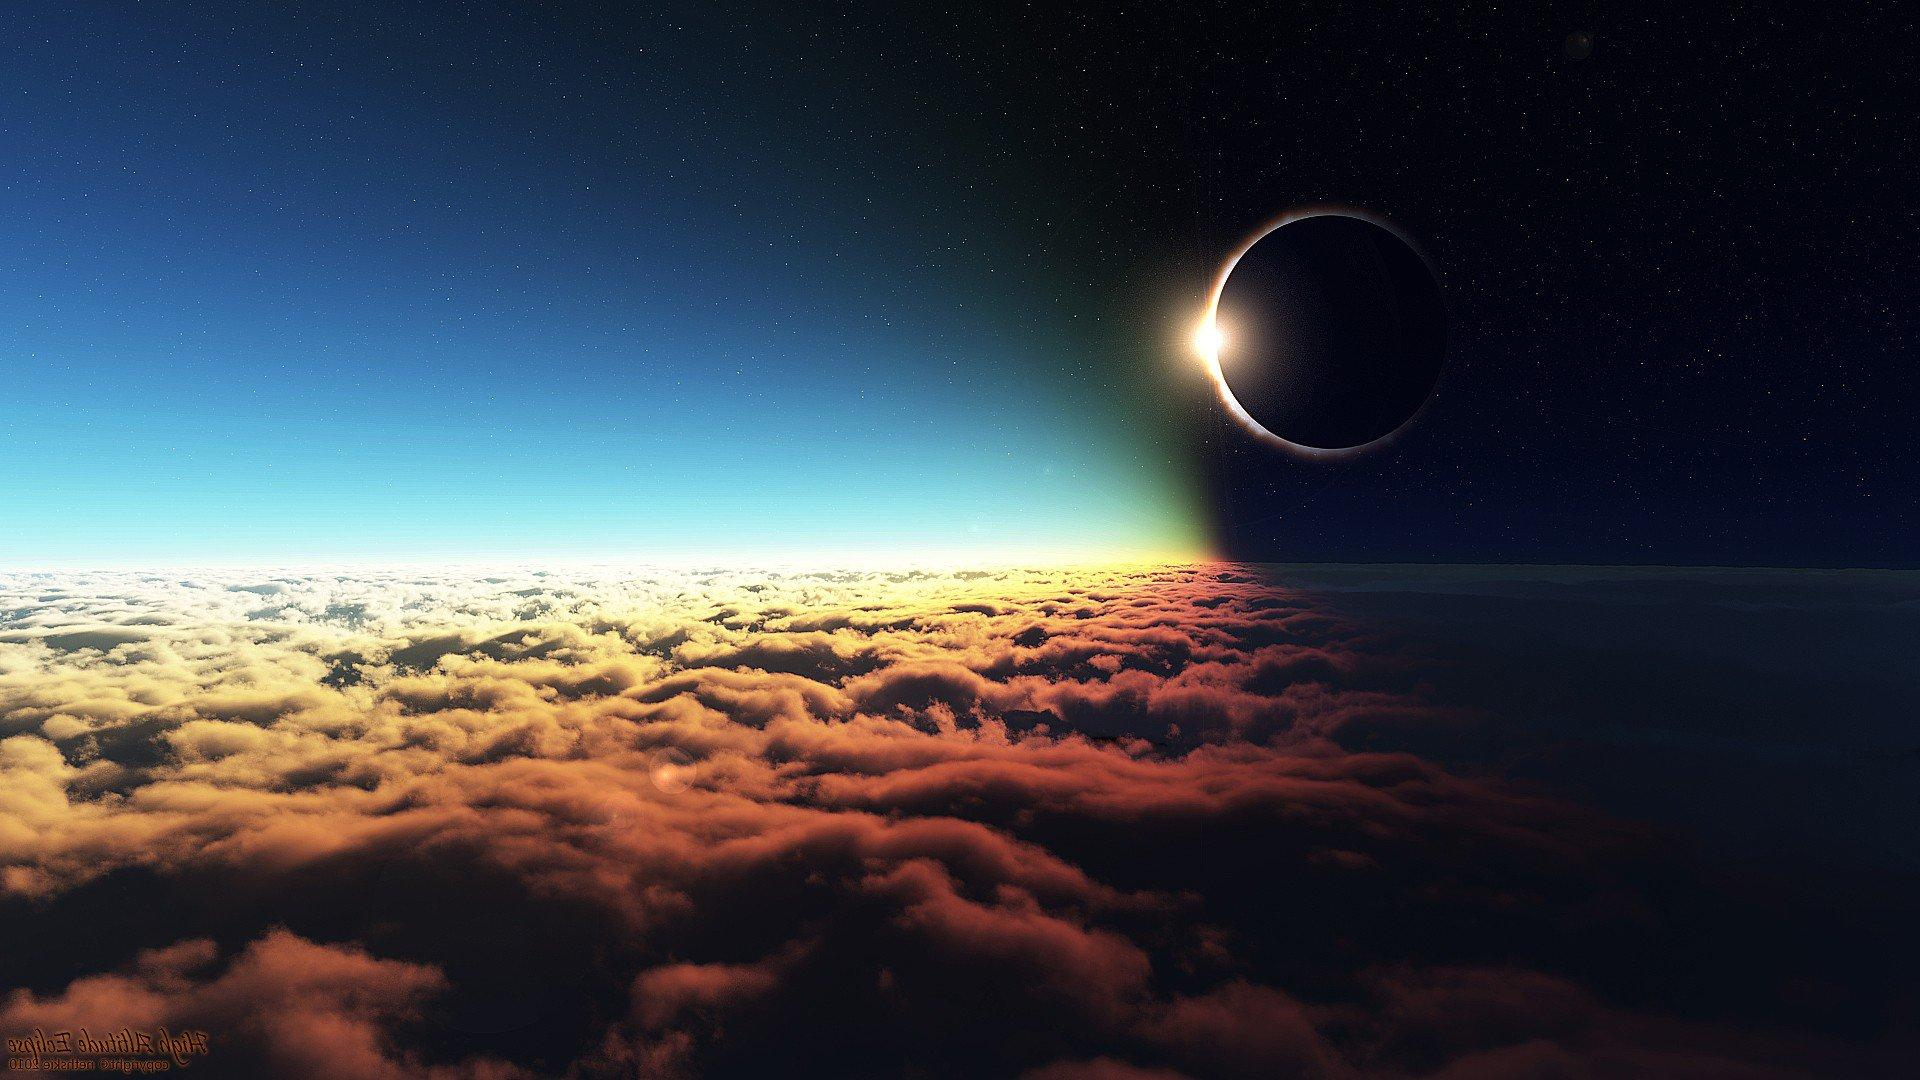 Eclipse Altitude, HD Digital Universe, 4k Wallpapers, Image